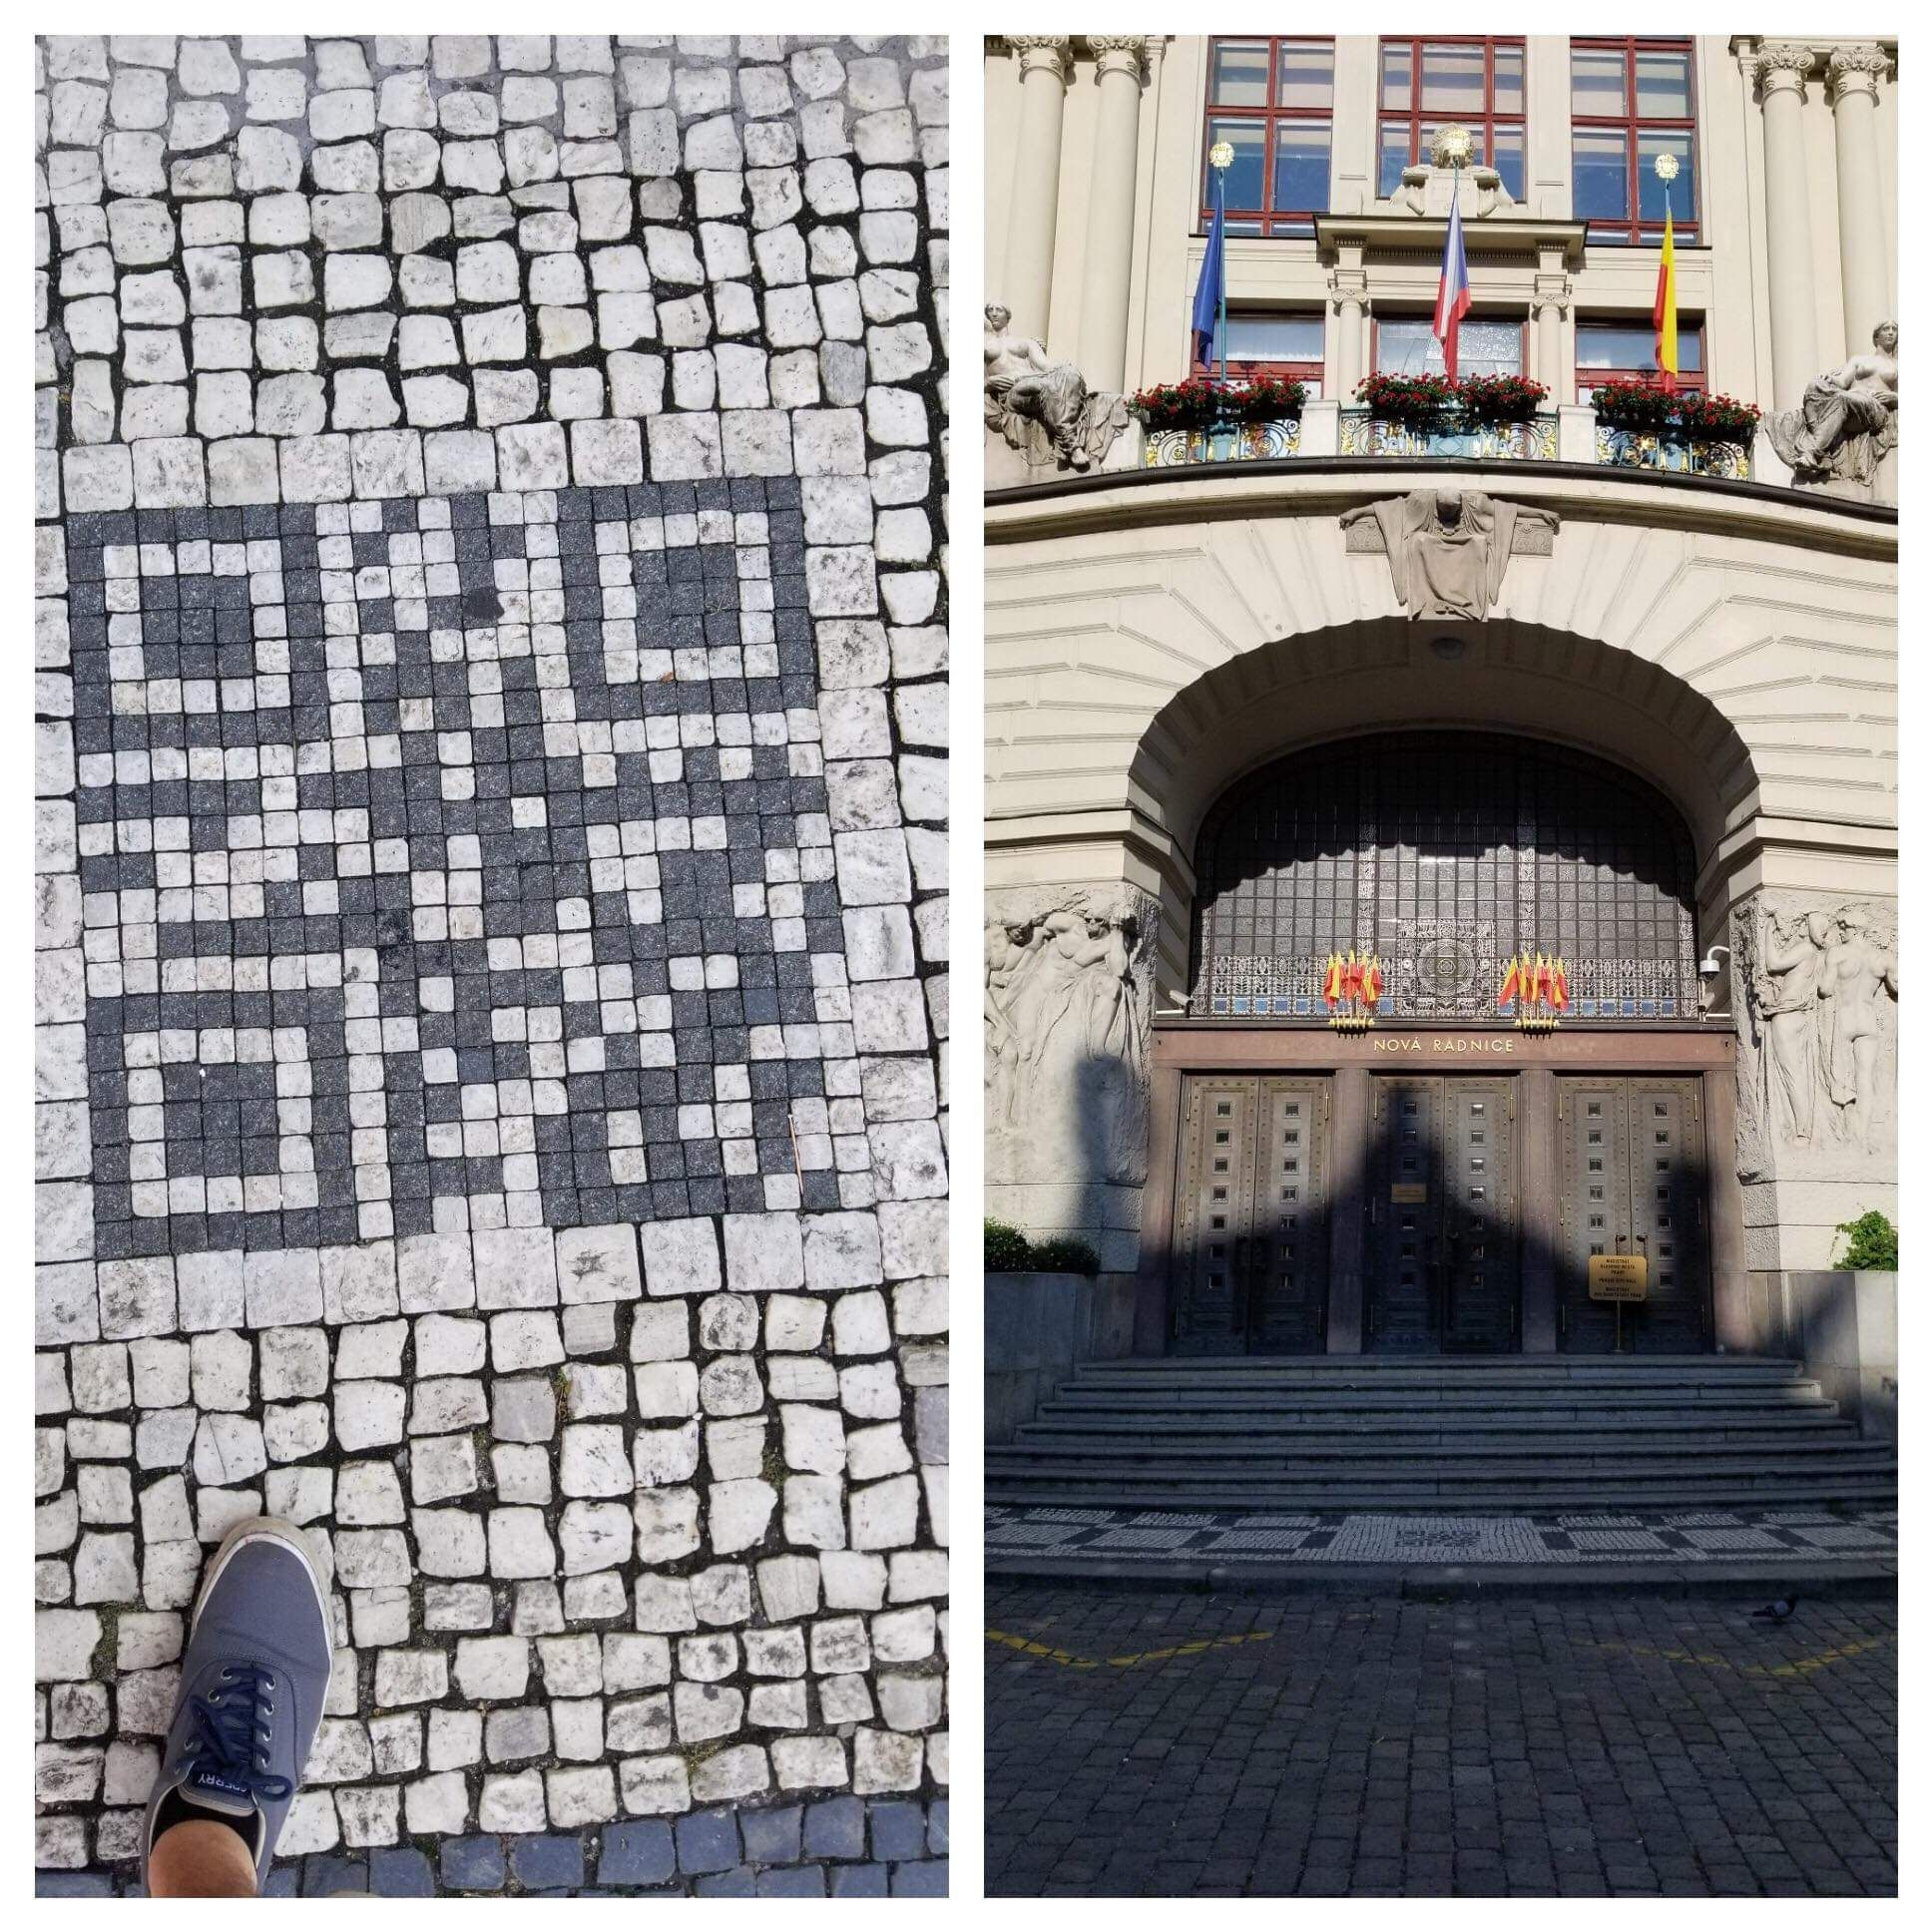 Some Prague city worker figured out how to troll tourists IRL.